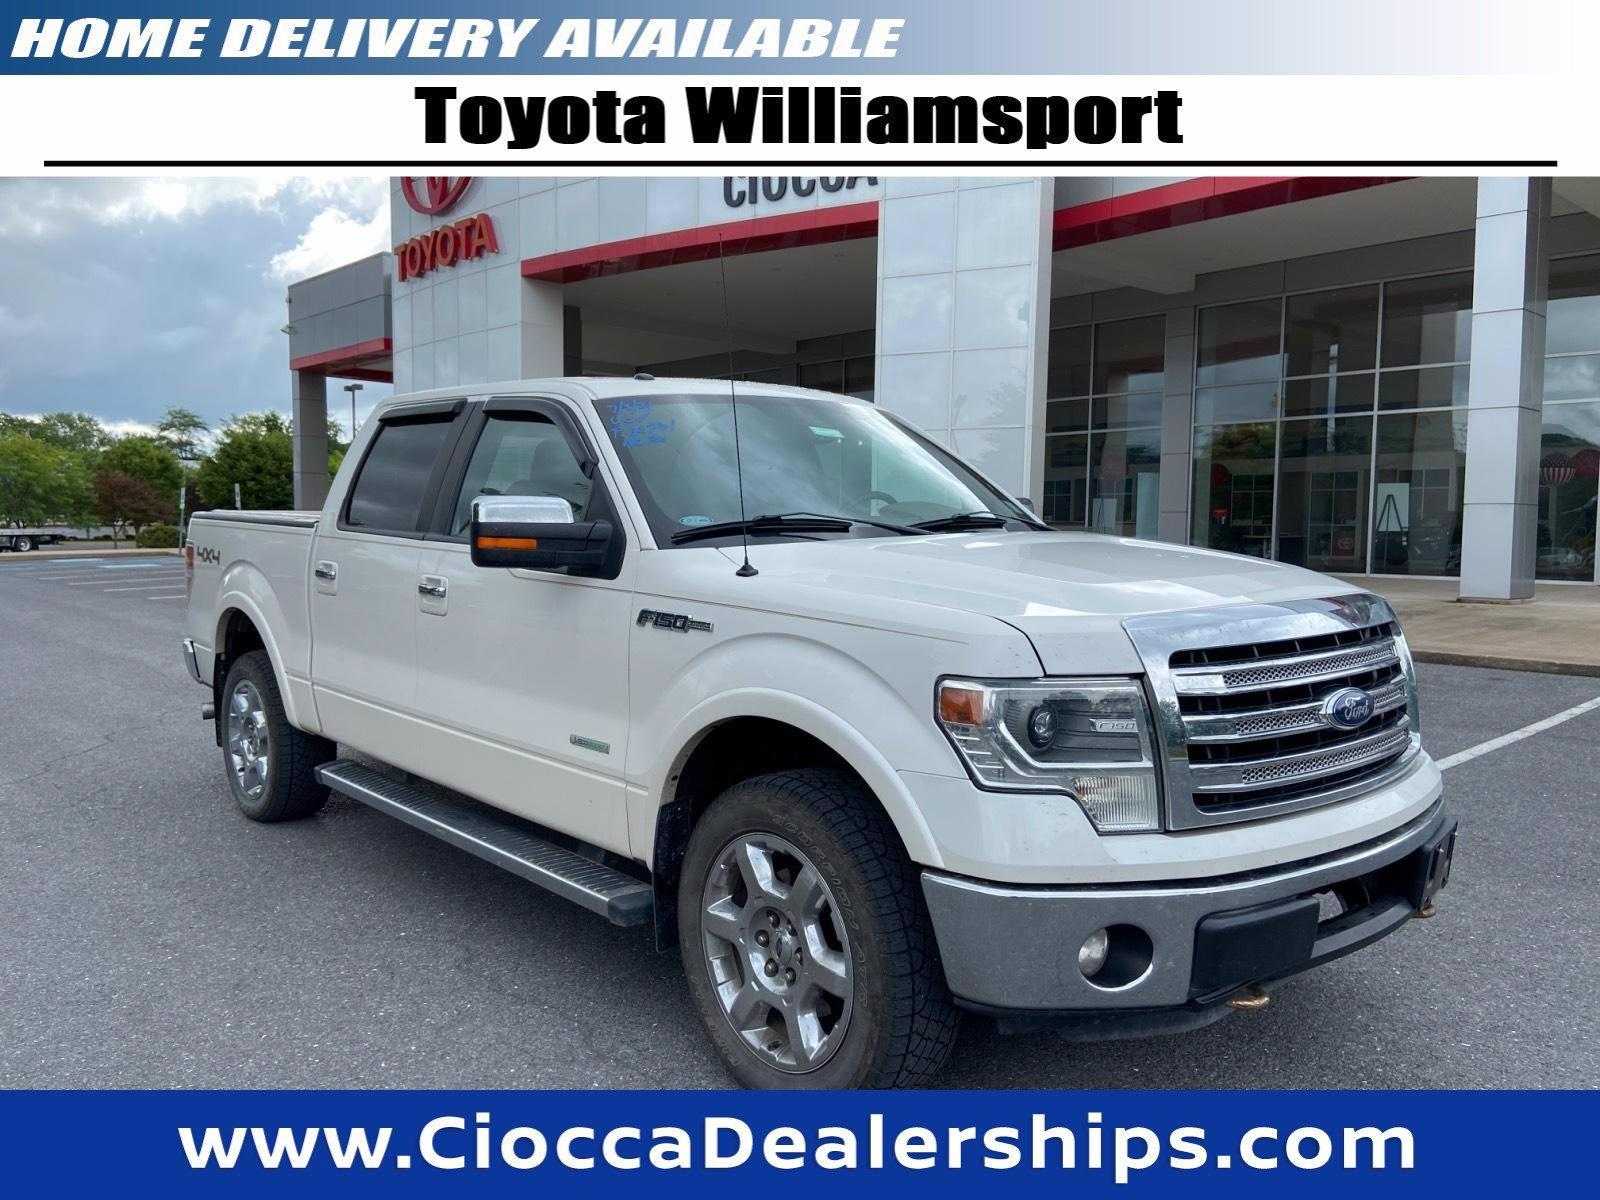 2013 Ford F-150 Vehicle Photo in Muncy, PA 17756